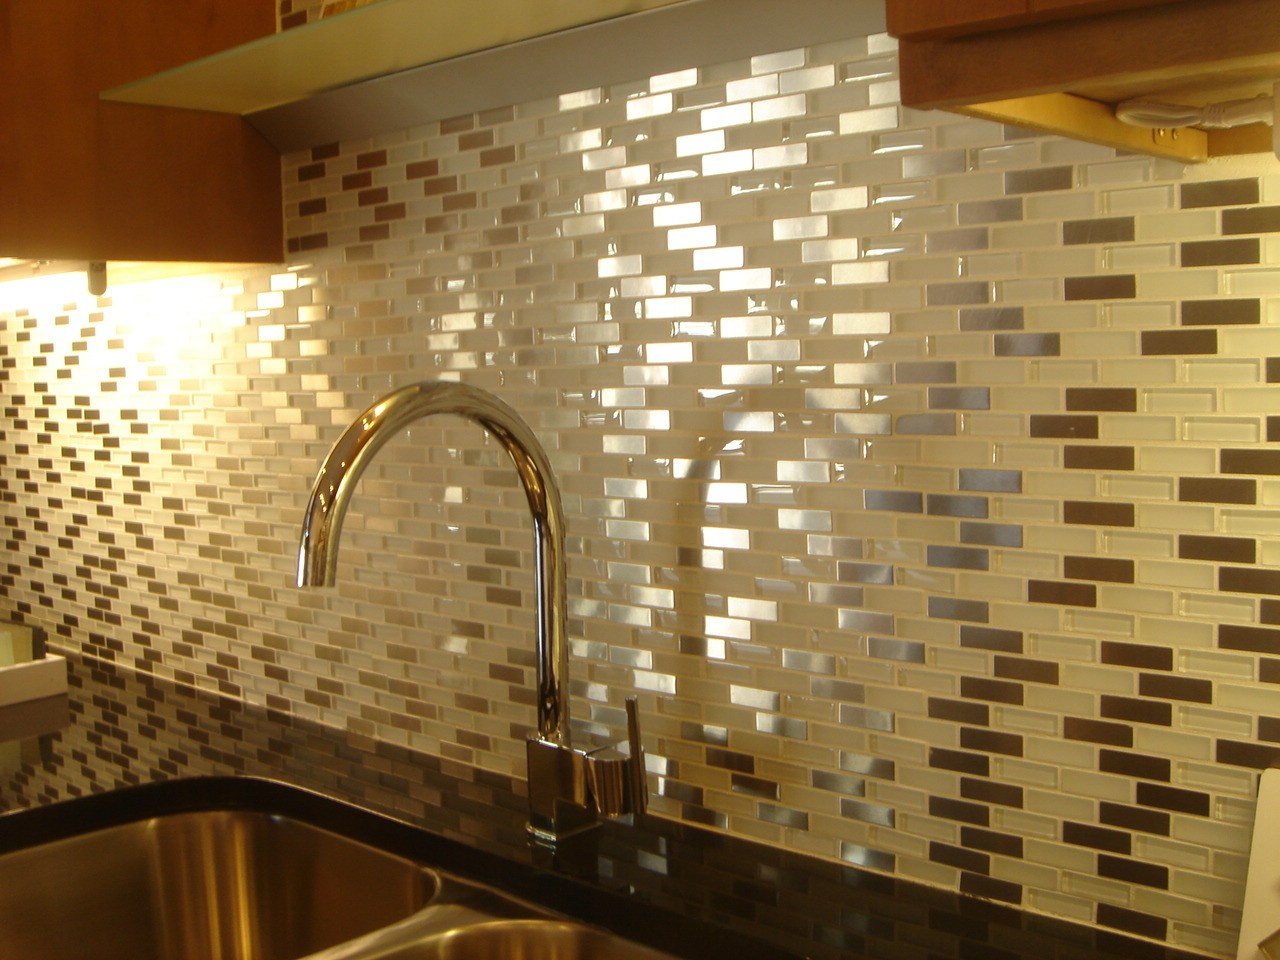 Ceramic Kitchen Wall Tiles Ideas